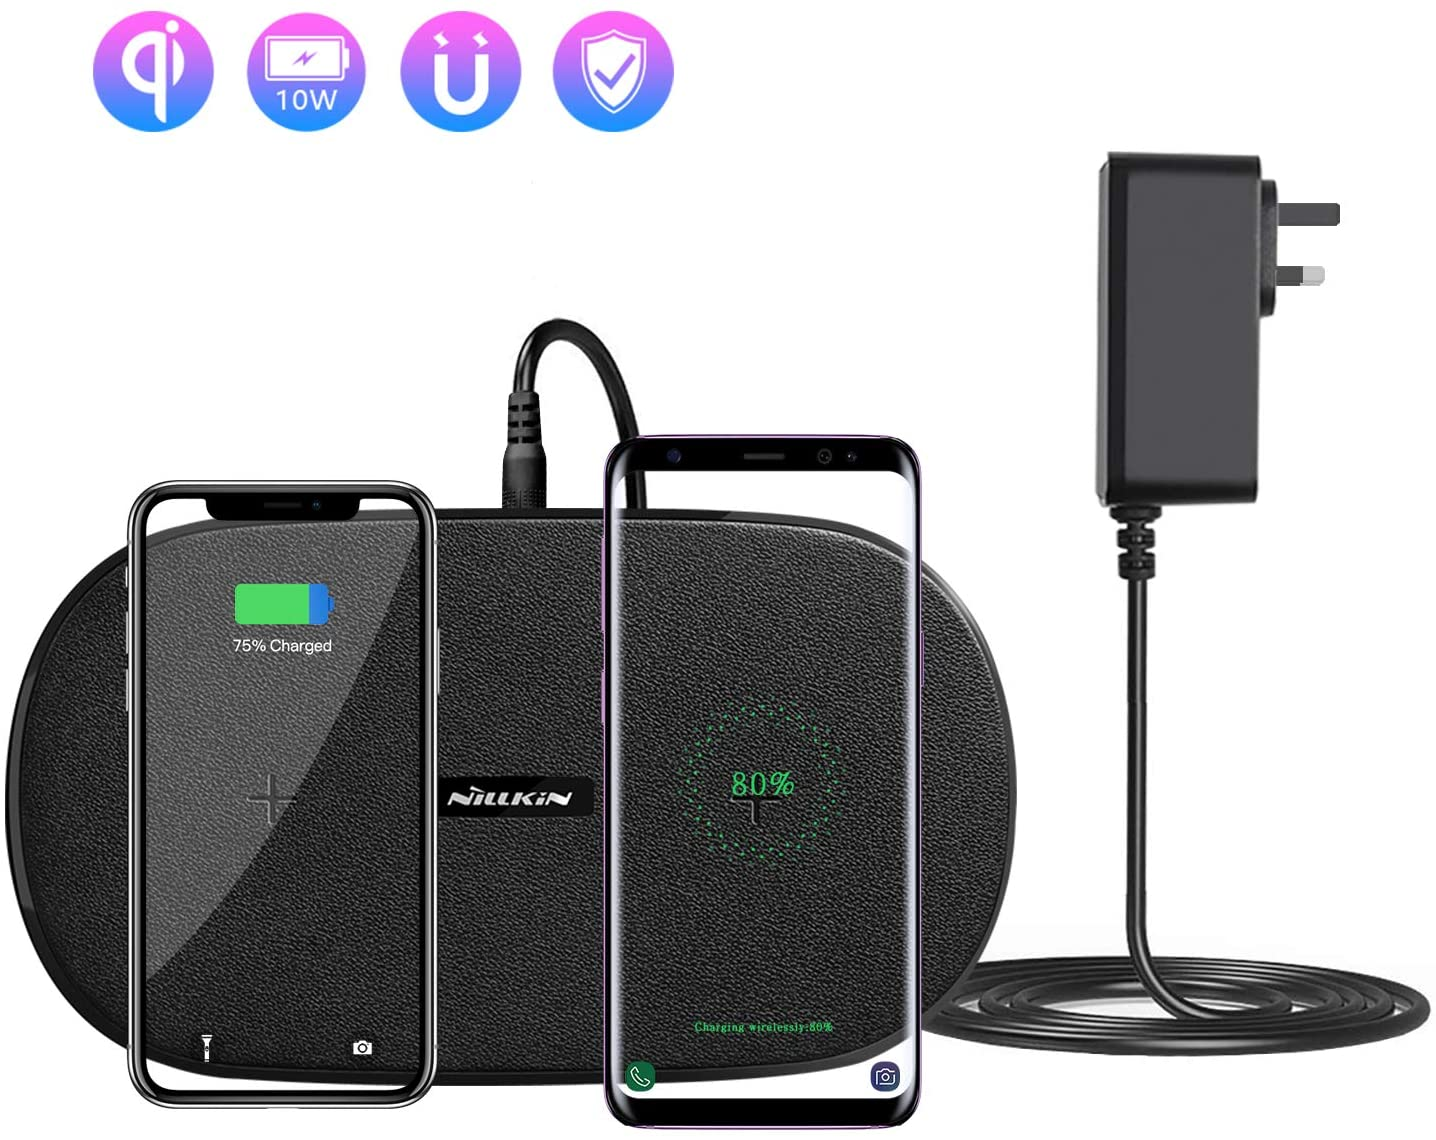 Nillkin Dual Wireless Charging Pad - Double Phone Wireless Charger, Qi Fast Charging 7.5W for iPhone 11/11Pro/XR/XS/X/ 8 Plus, 10W for Samsung S10/S9 /S8/Note 10 Airpods and More -Includes AC Adapter